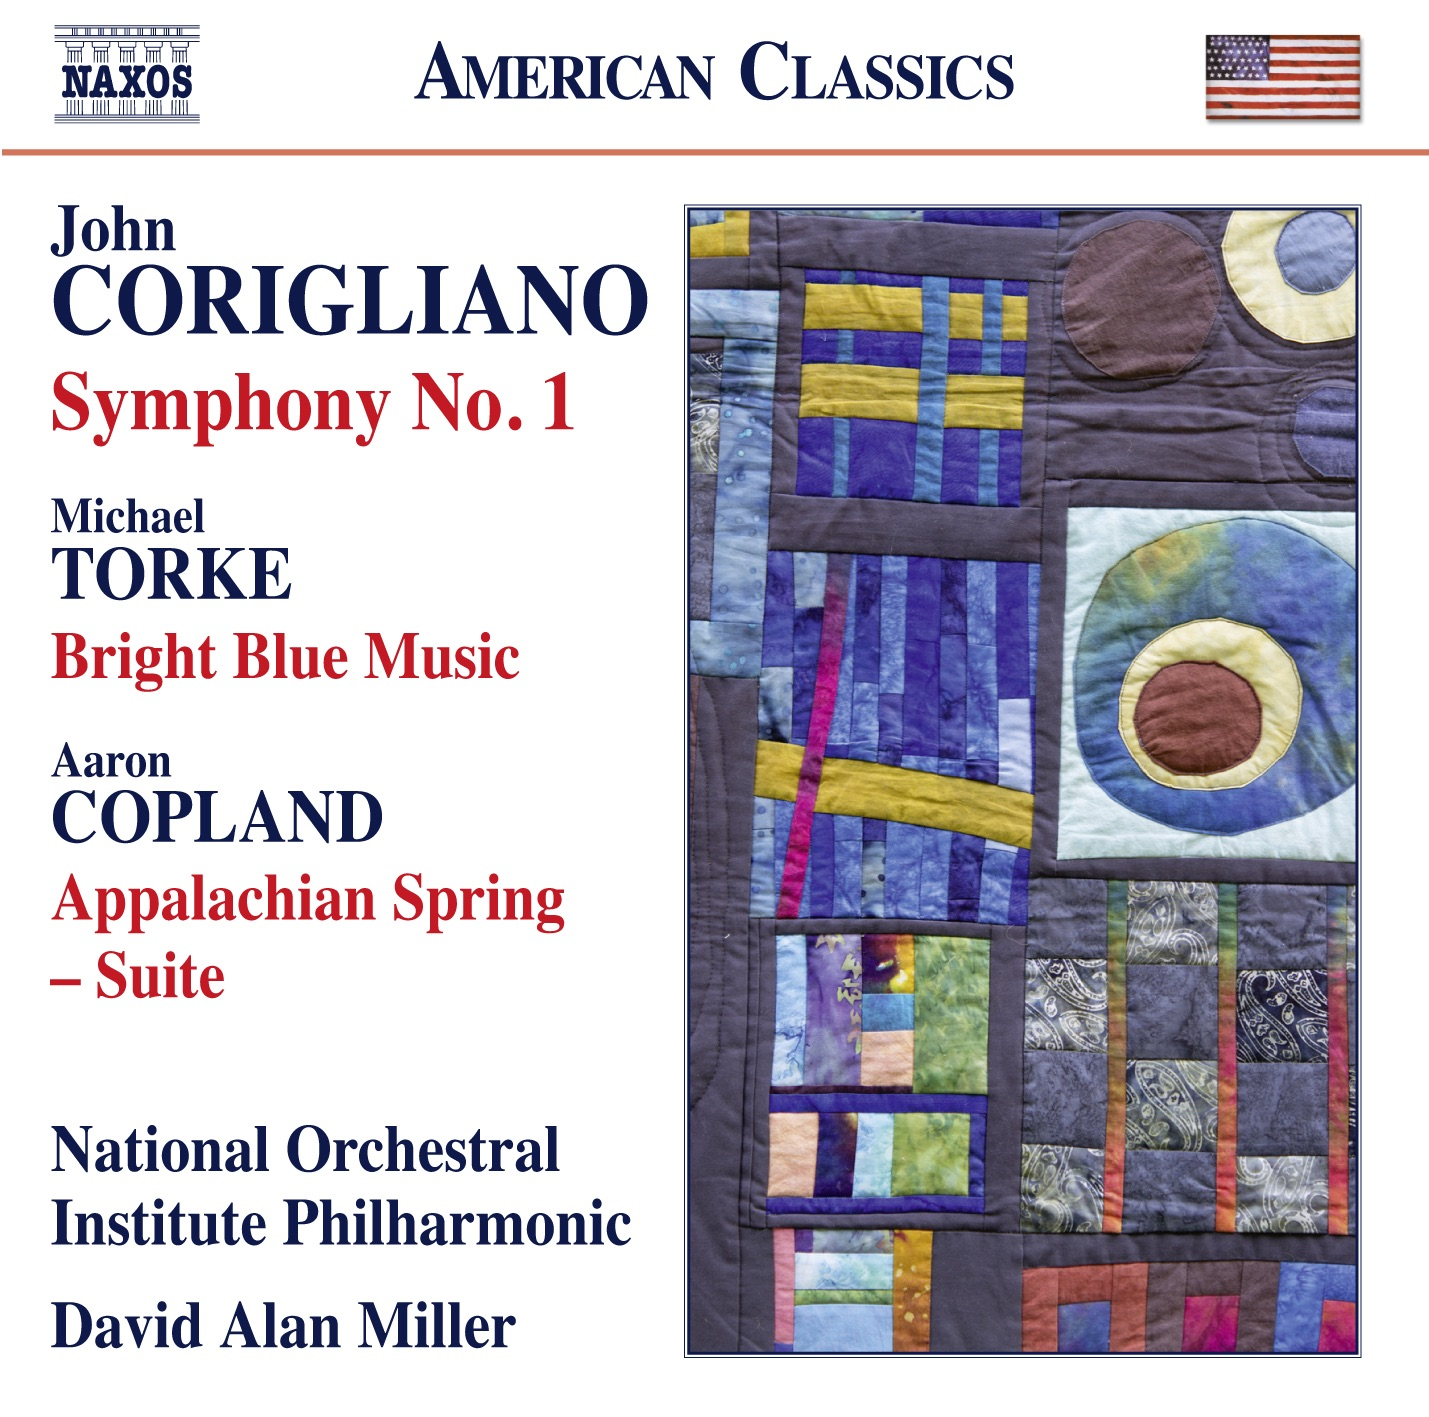 an analysis of the appalachian spring a composition by aaron copland